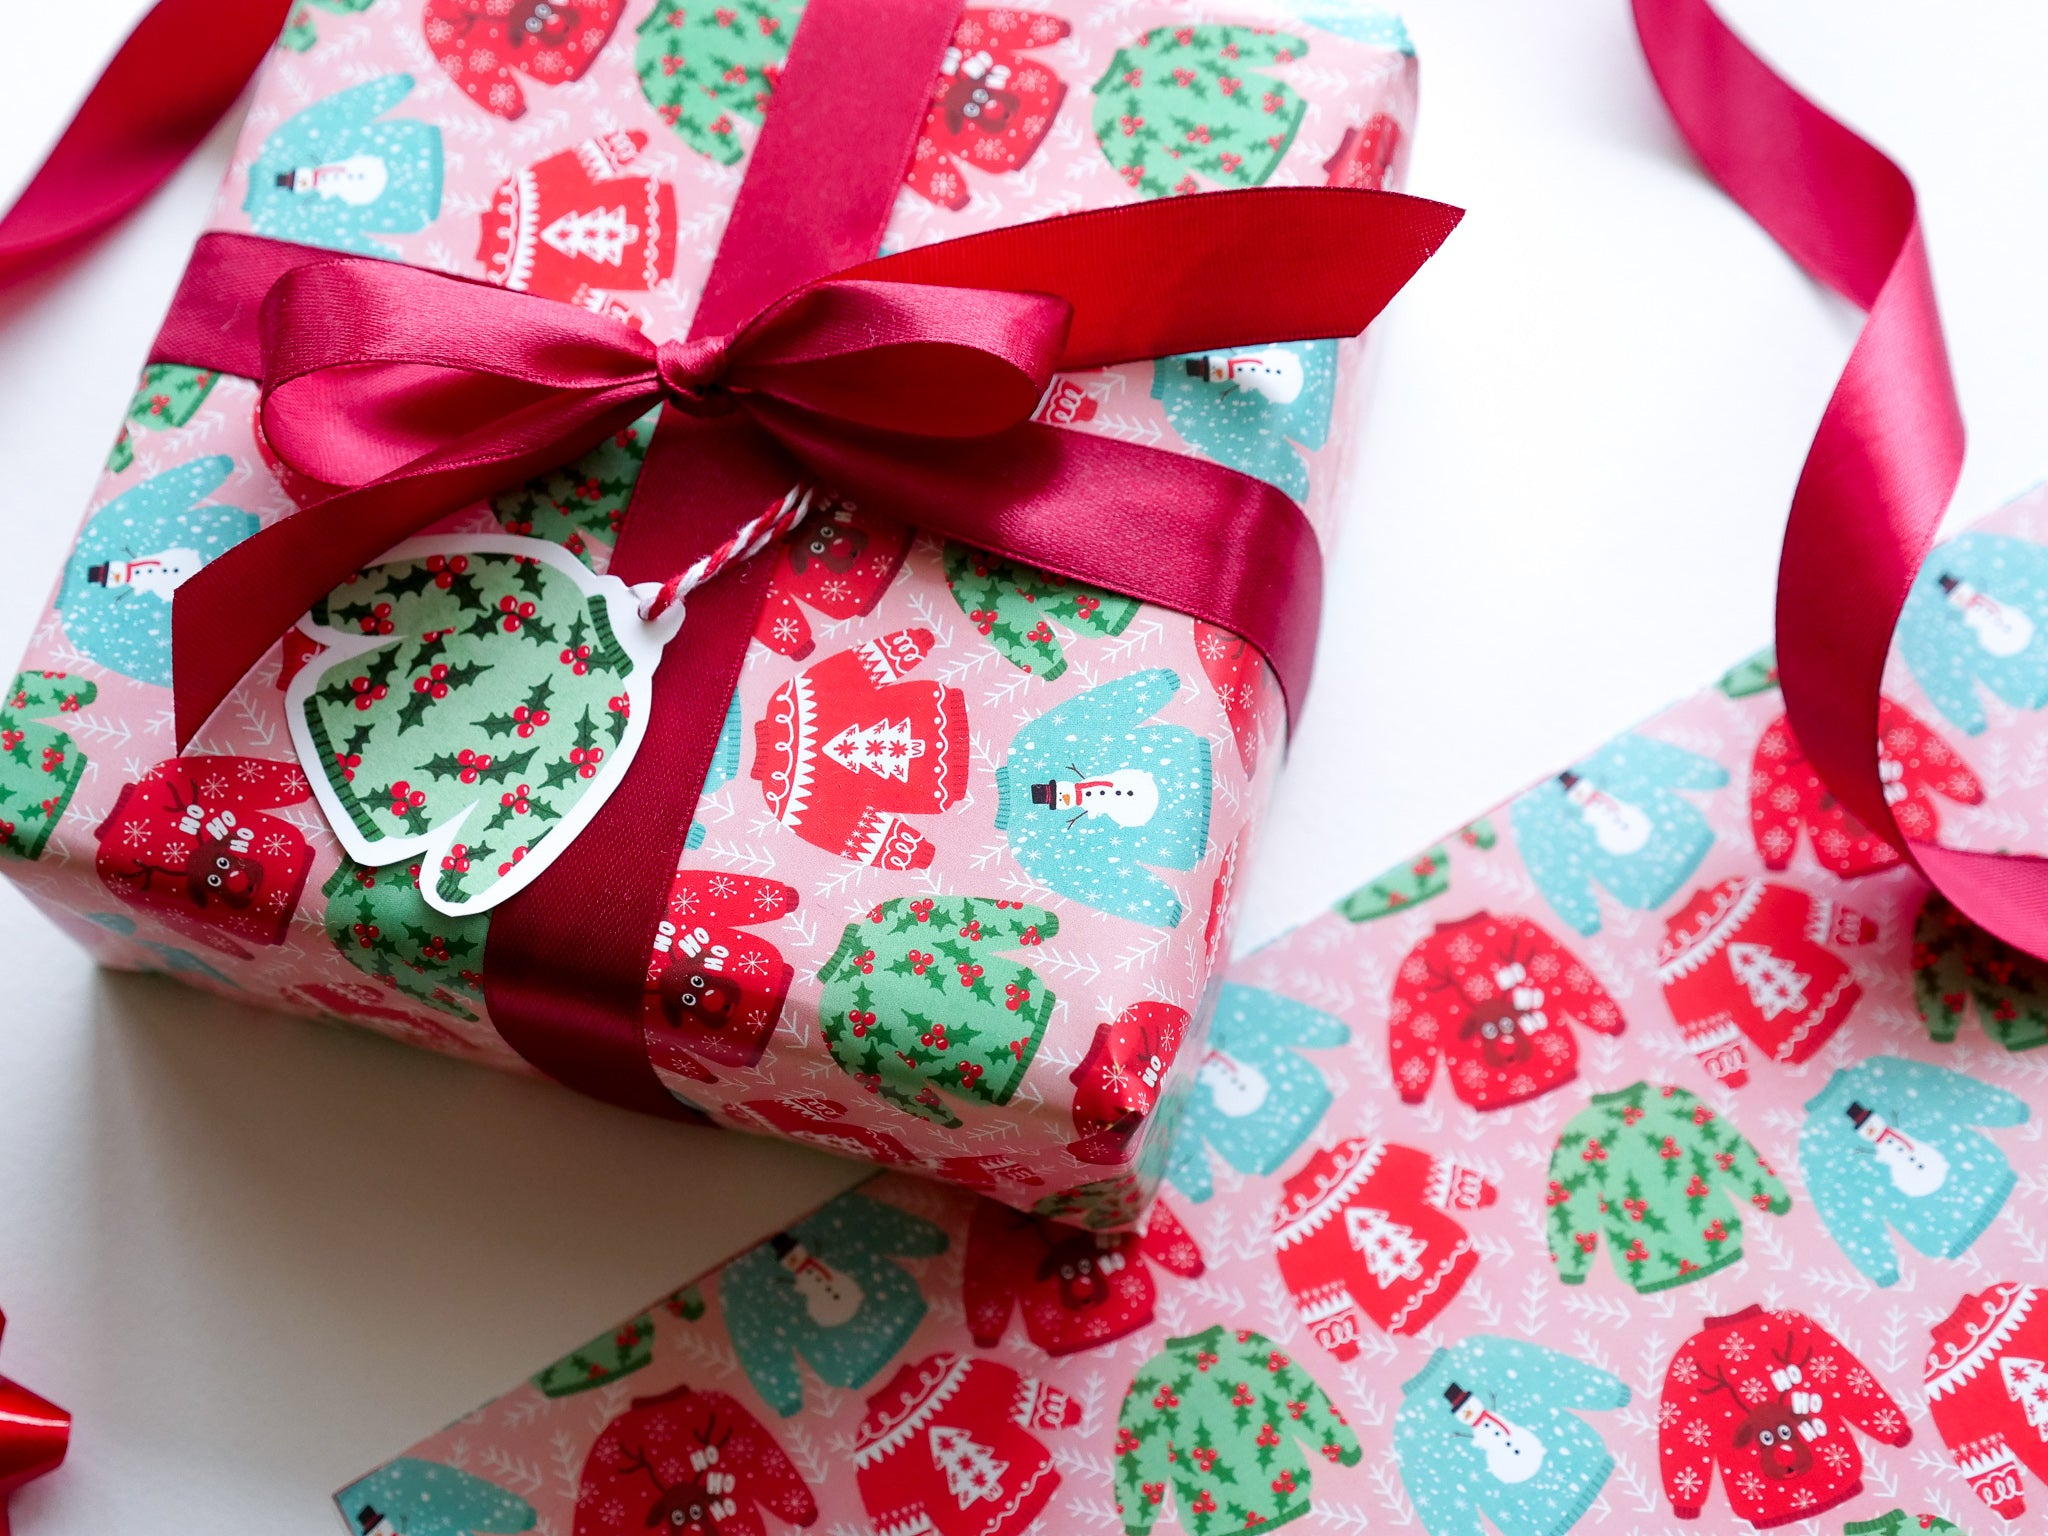 Christmas Jumper Wrapping paper with gift tag in pinks and greens HUTCH London